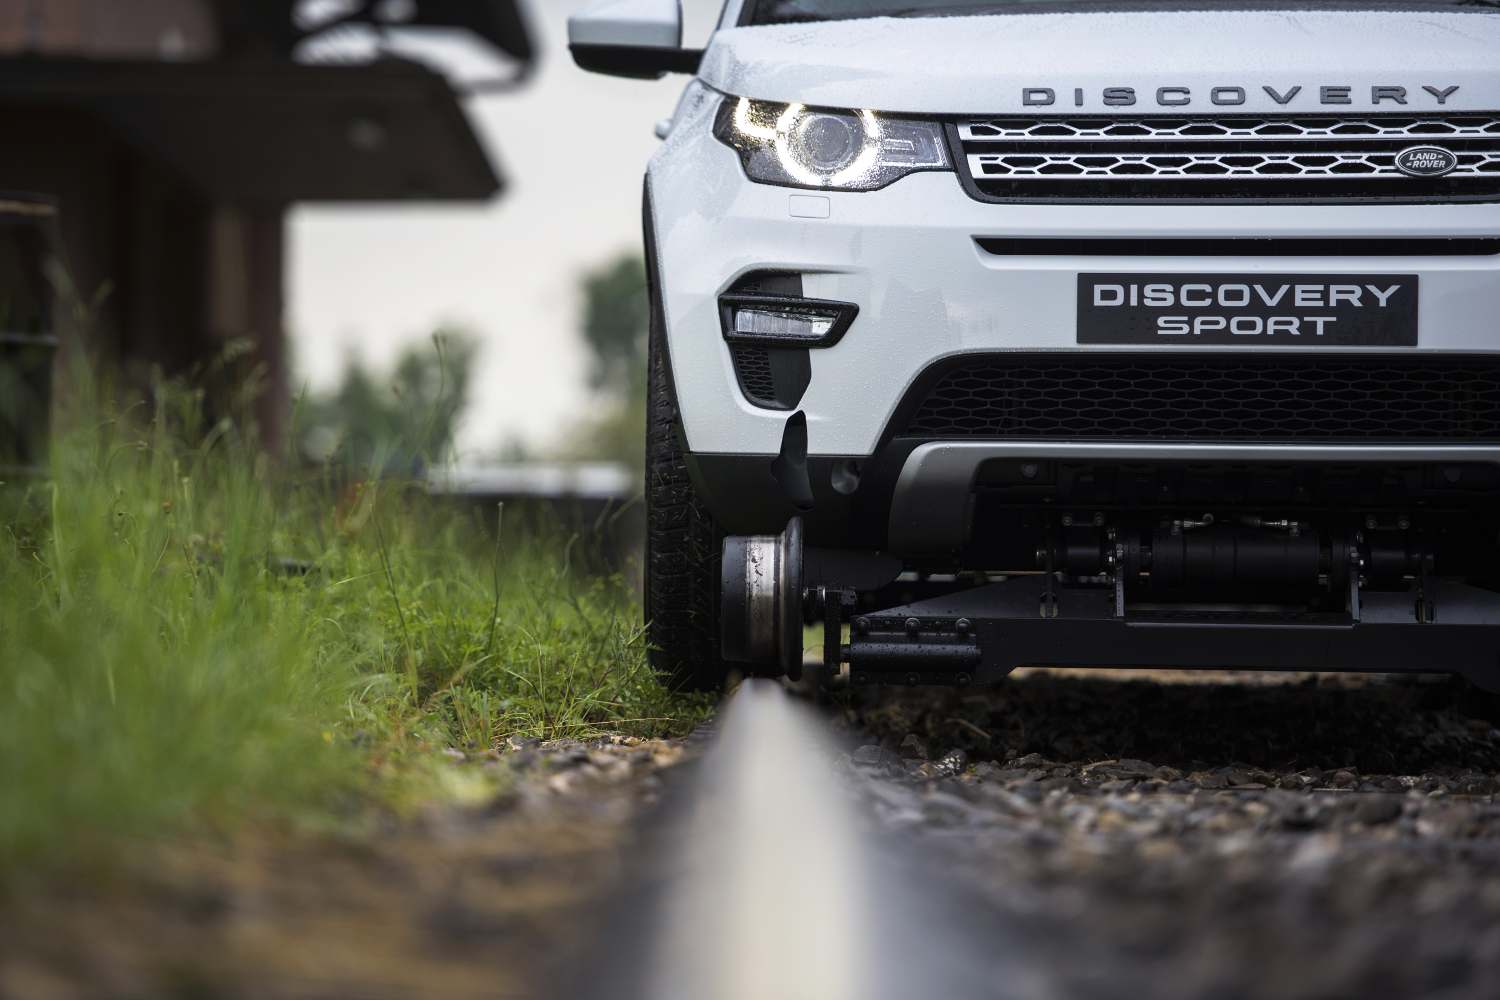 Semi-Autonomous Tech Helps Discovery Sport Pull 108-Tonne Train